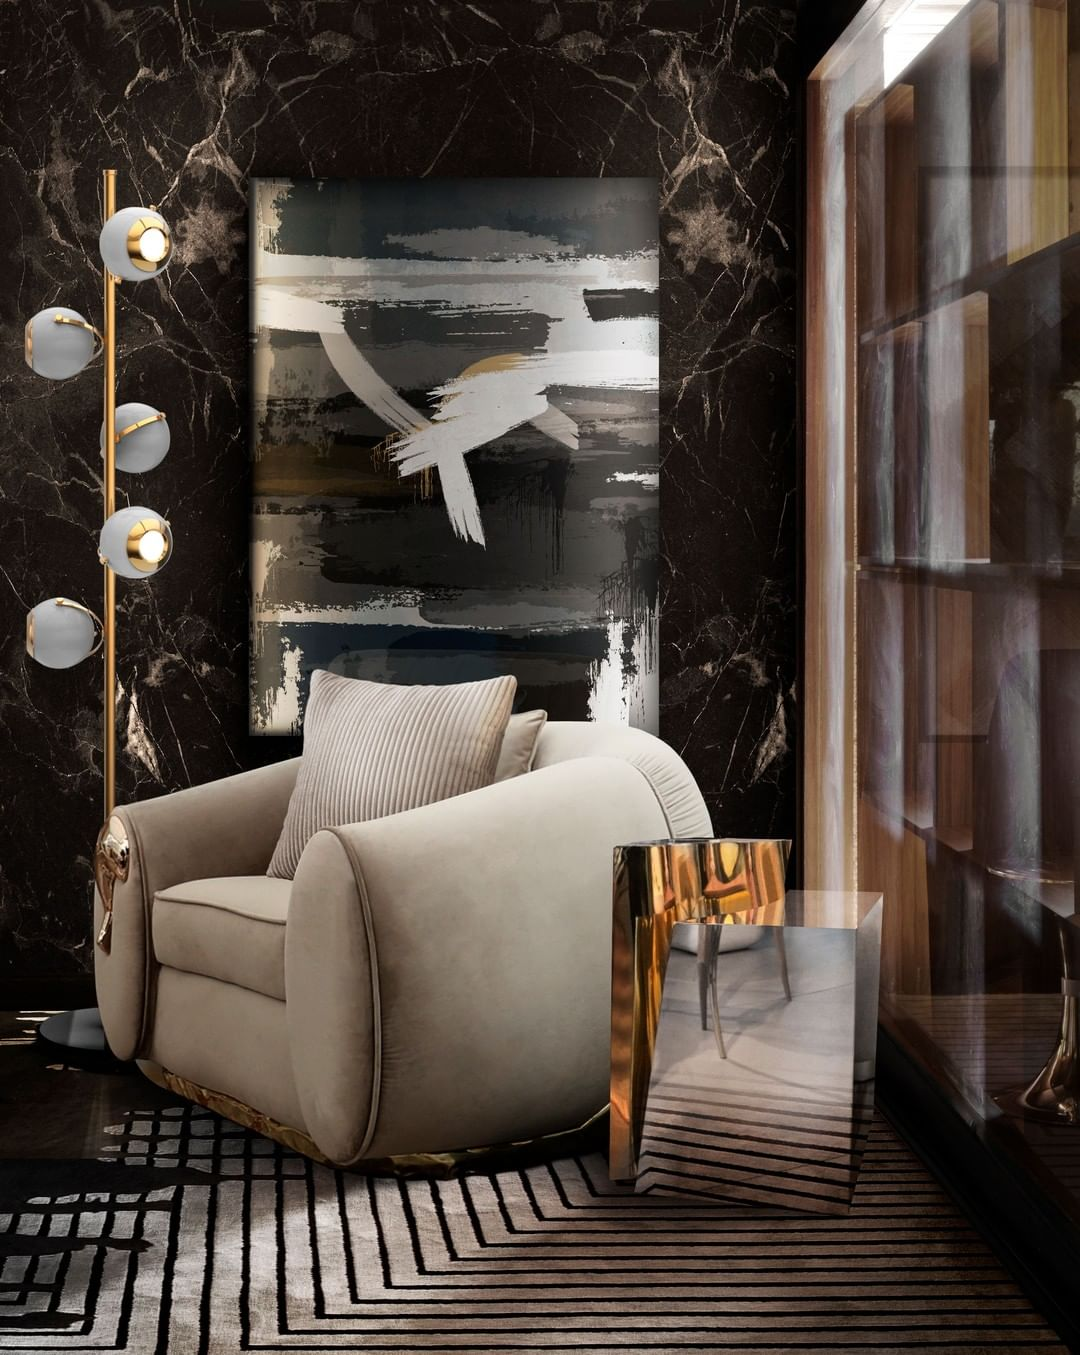 Give Your Home a Modern Decor - 20 Inspirations Room by Room home inspiration ideas